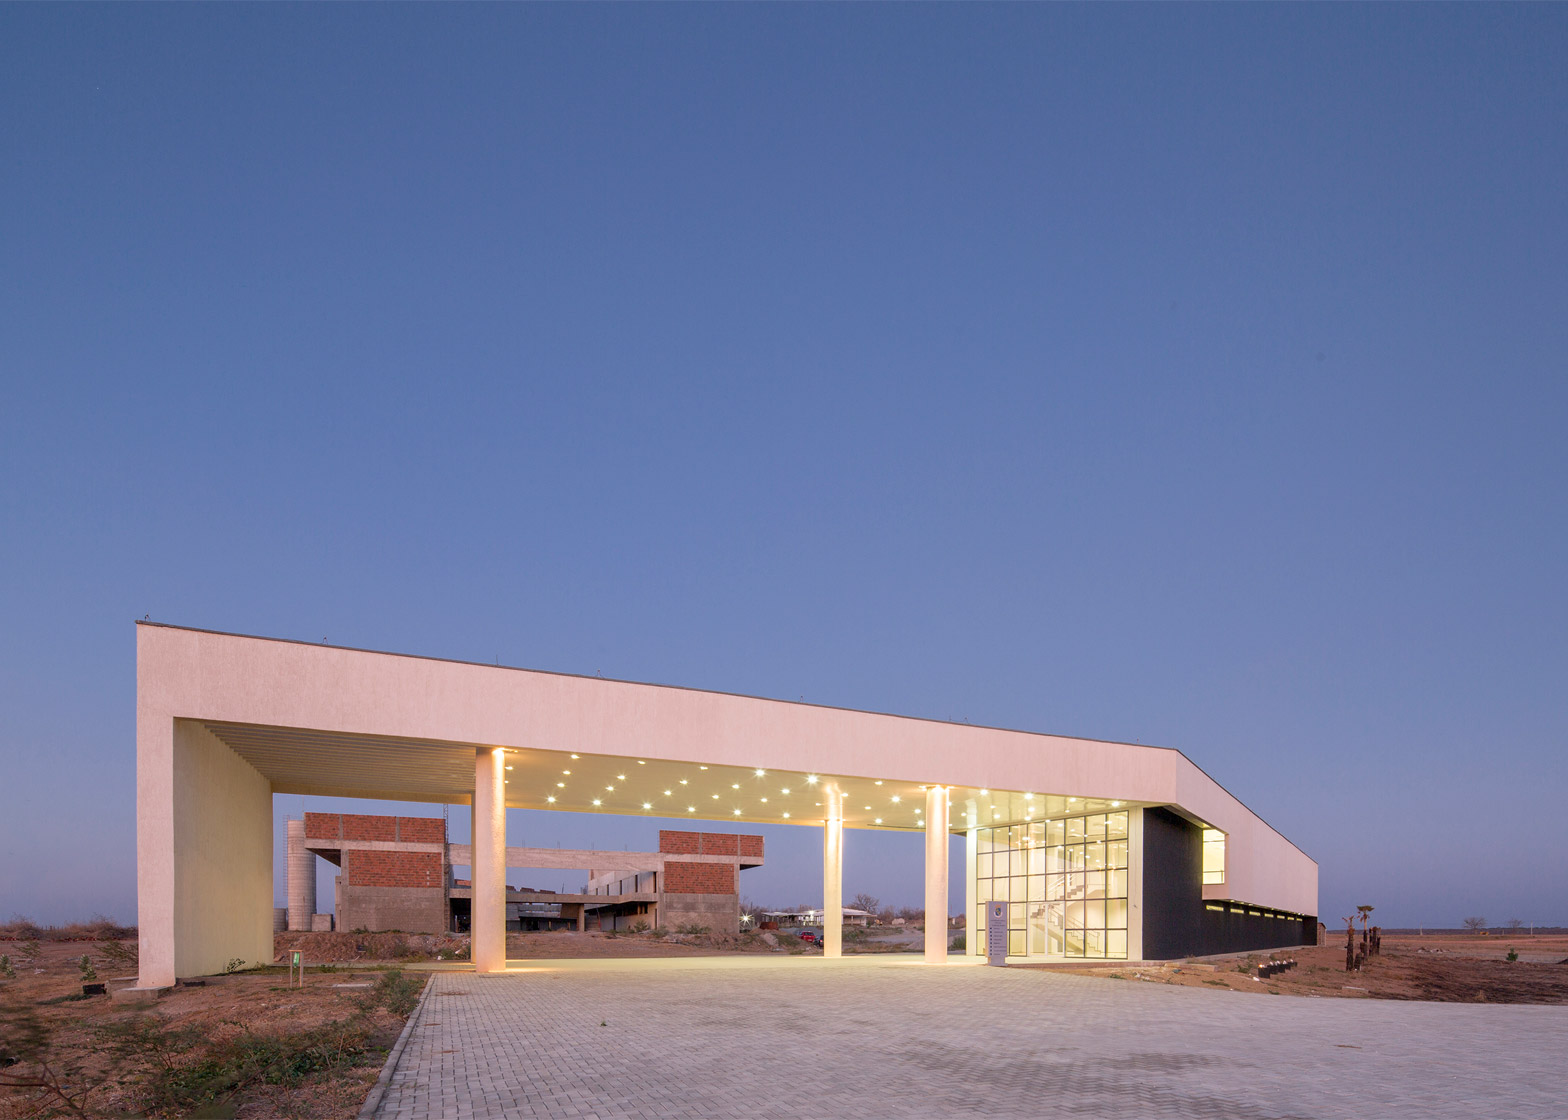 Administrative building of the Federal University of Ceara in Brasil by Rede Arquitetos, photograph by Joana Franca